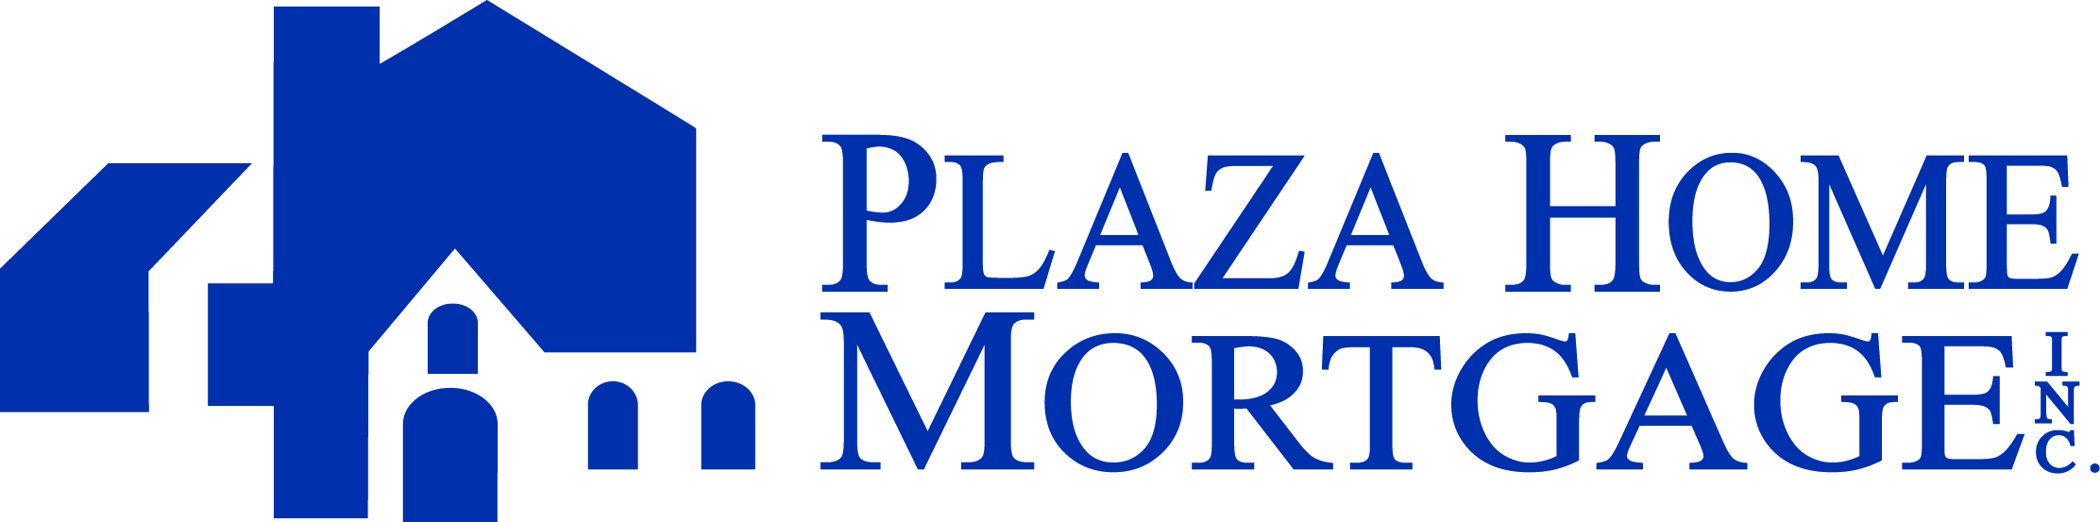 Plaza_Home_Mortgage_logo